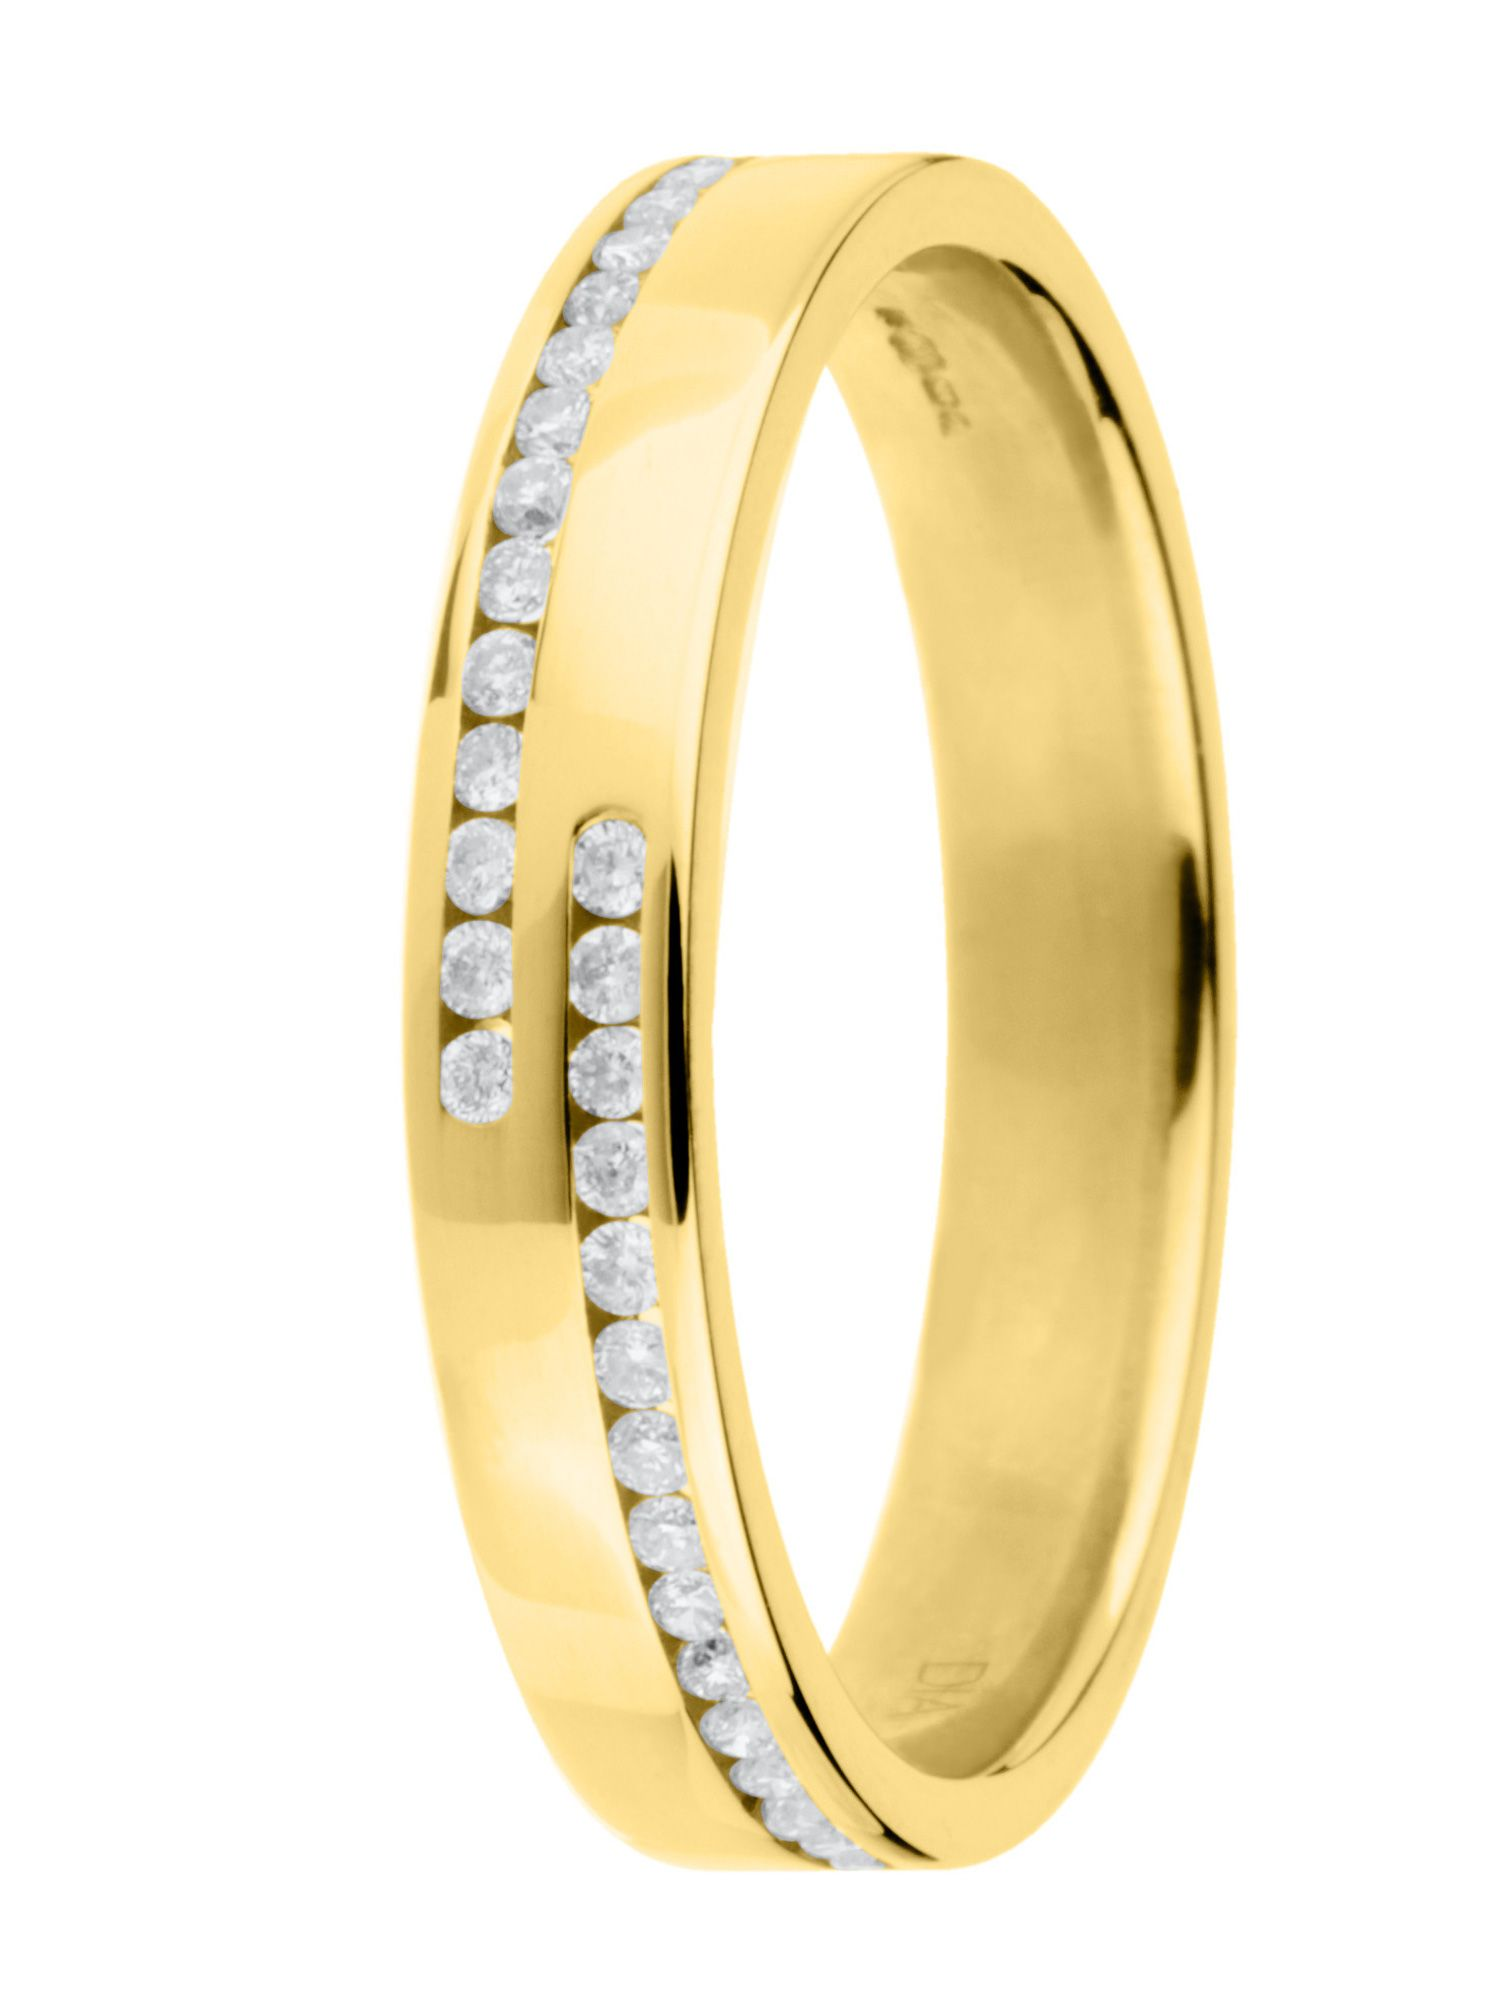 Brides 18ct gold 0.15ct polished wedding ring